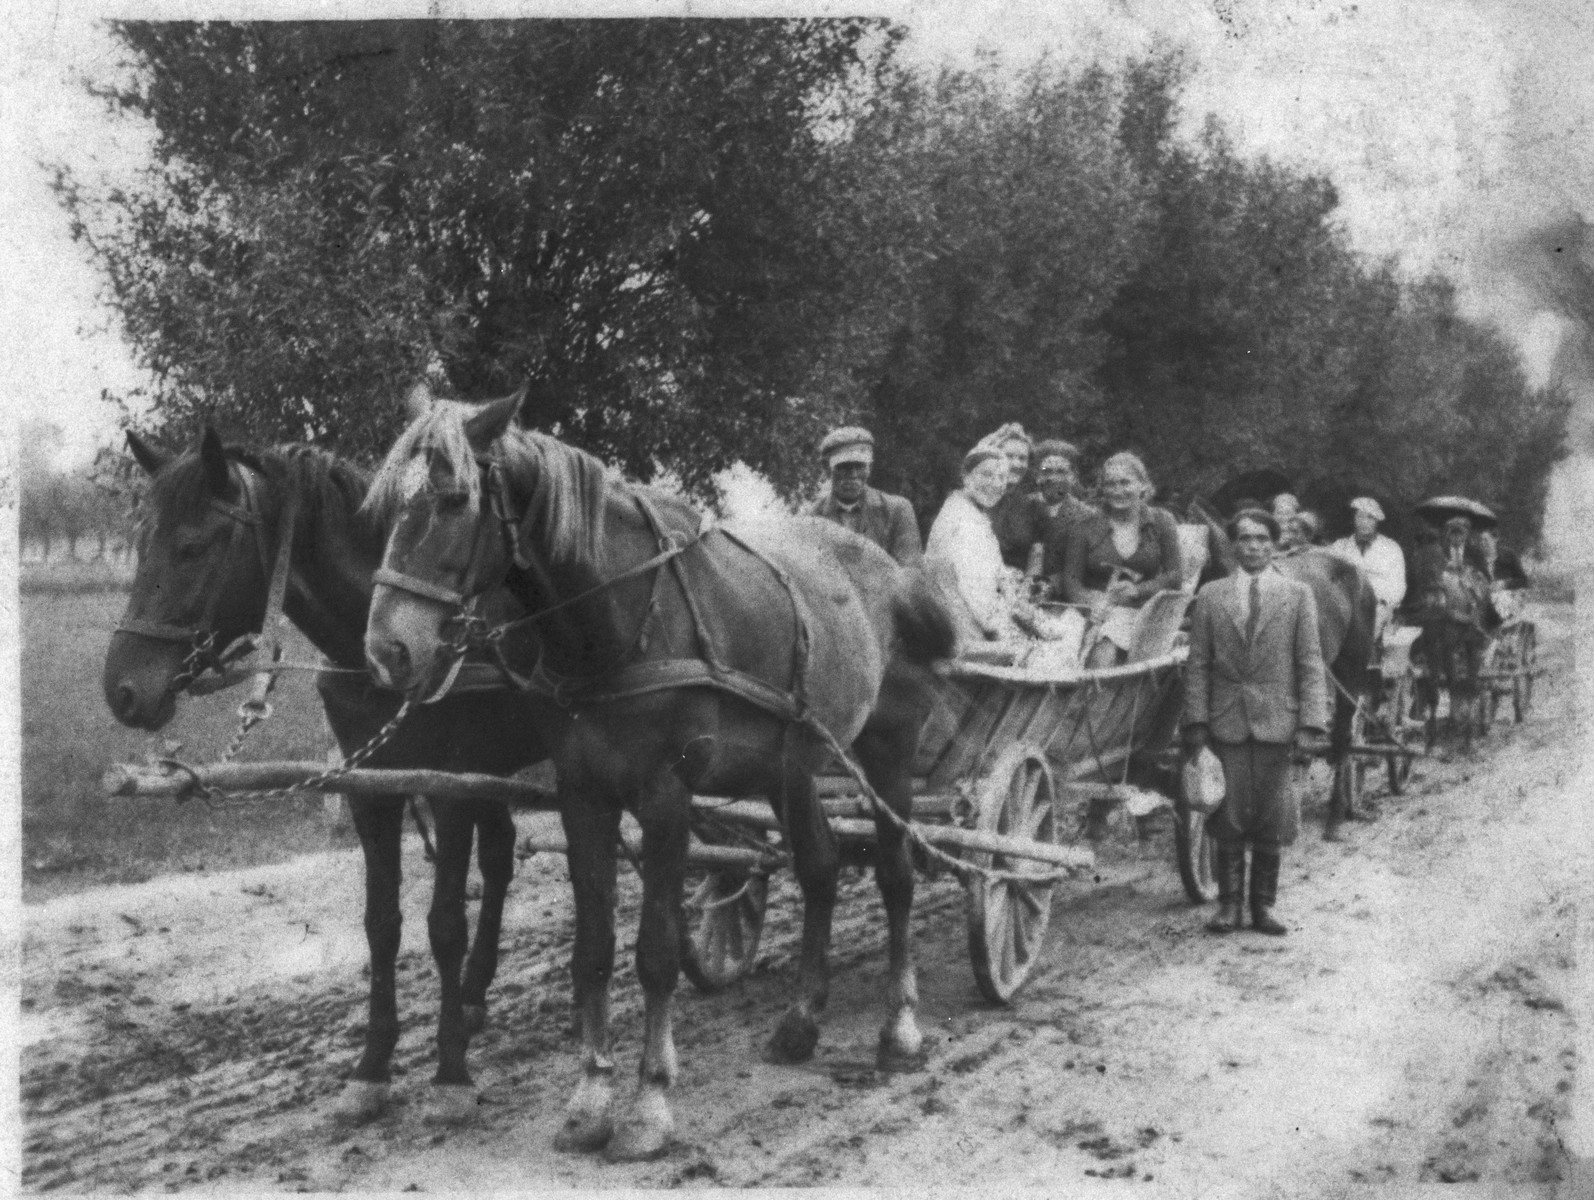 A group of Jews from Turobin travel by horse-drawn wagon to a wedding in a neighboring town.